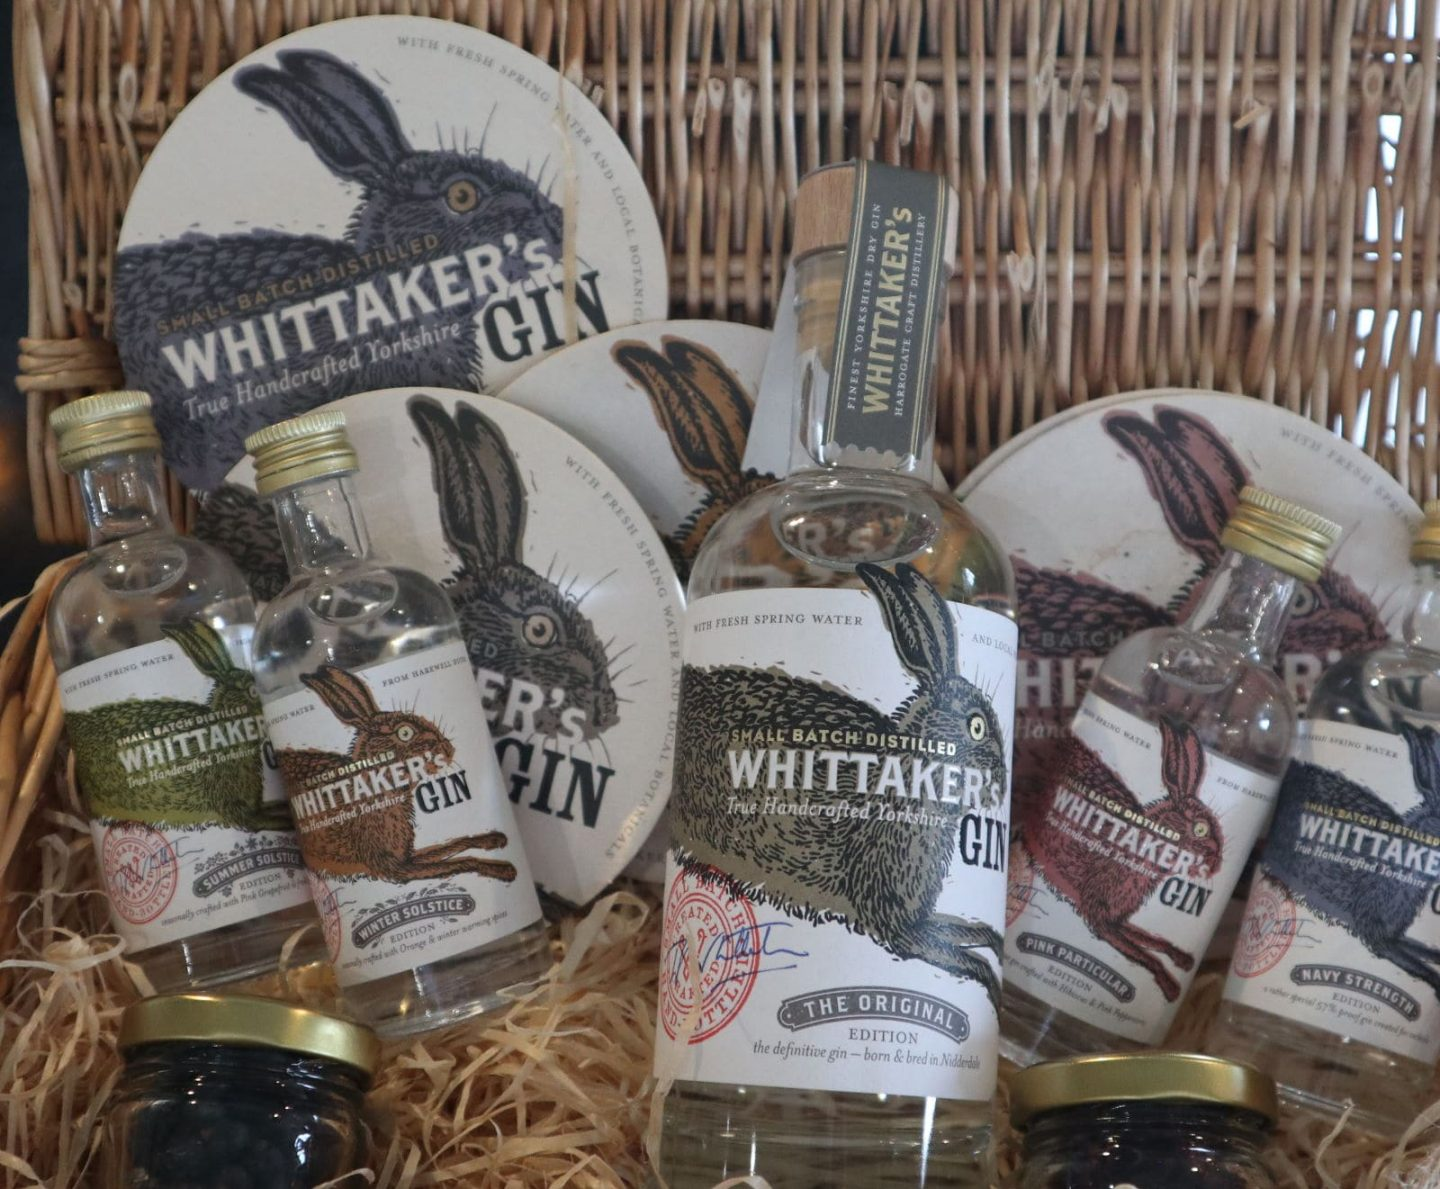 Whittaker's gin labels